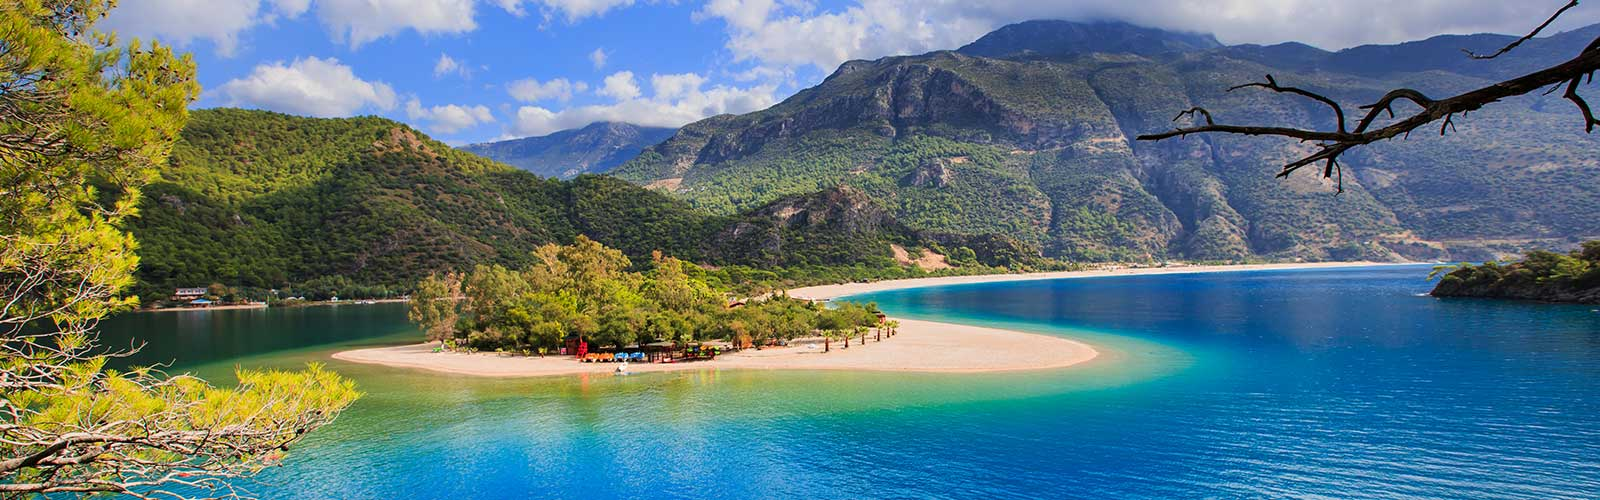 Mediterranean Coast Turkey